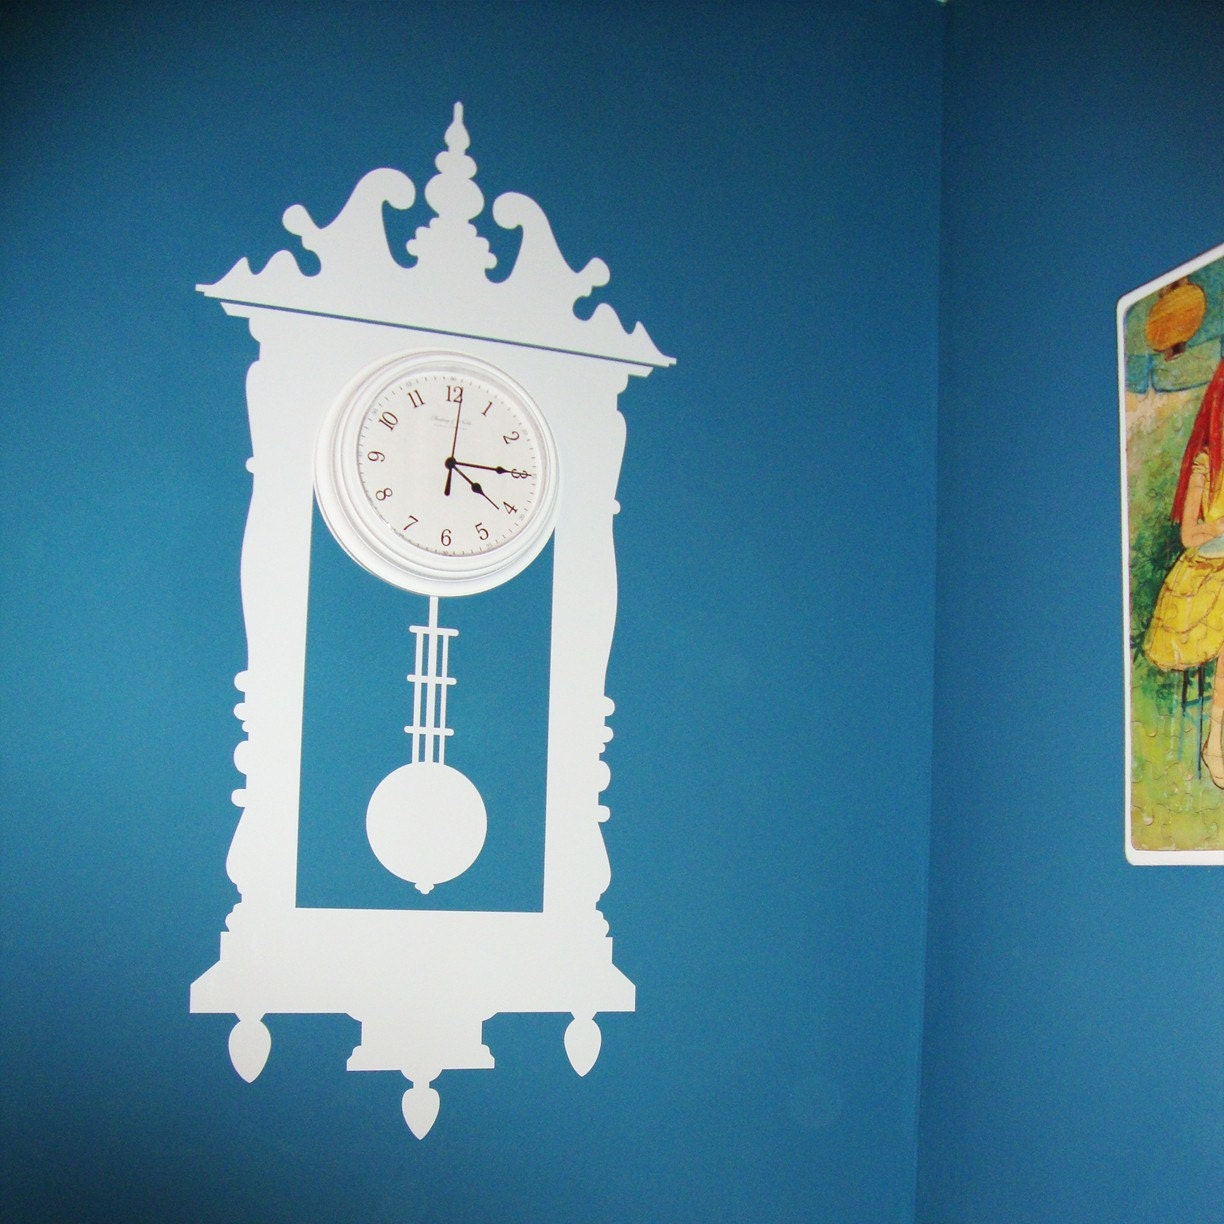 TicToc Antique Wall Clock Vinyl Wall Decal Graphic - Vintage wall decals